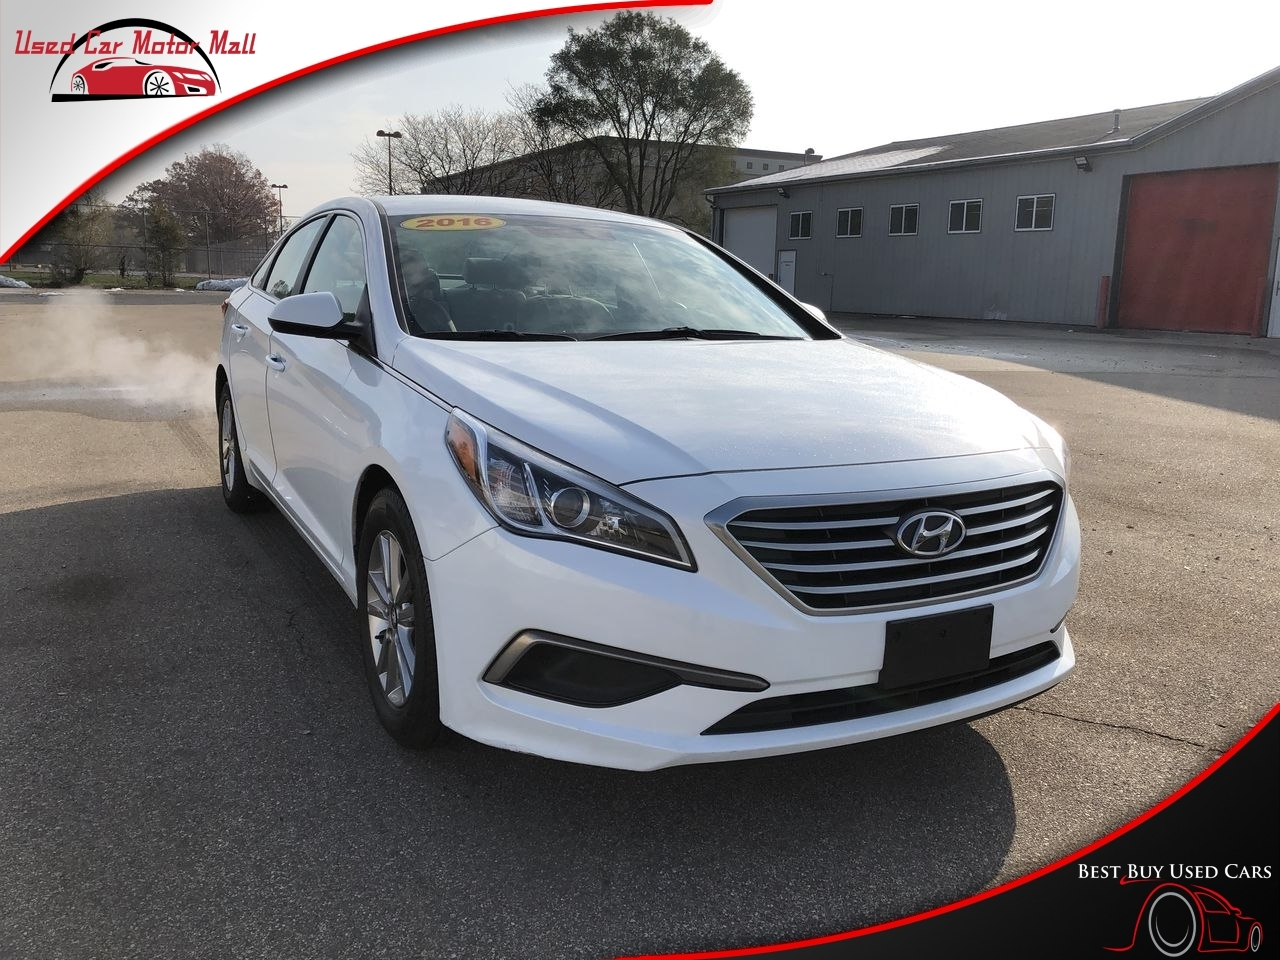 2014 Hyundai Sonata Limited, 886522, Photo 1